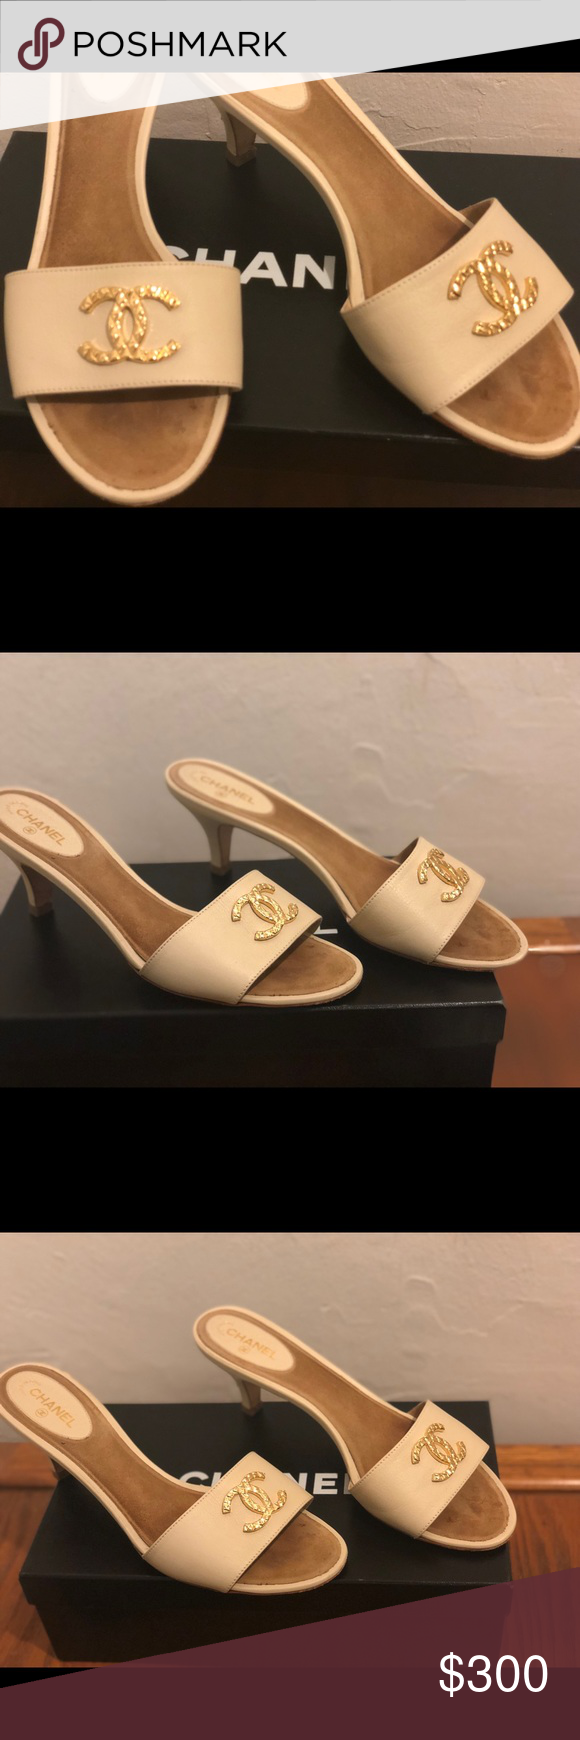 96cc3be97d39b1 Chanel sandals Chanel mules with kitten heel. Gold metal CC across the  front. Worn